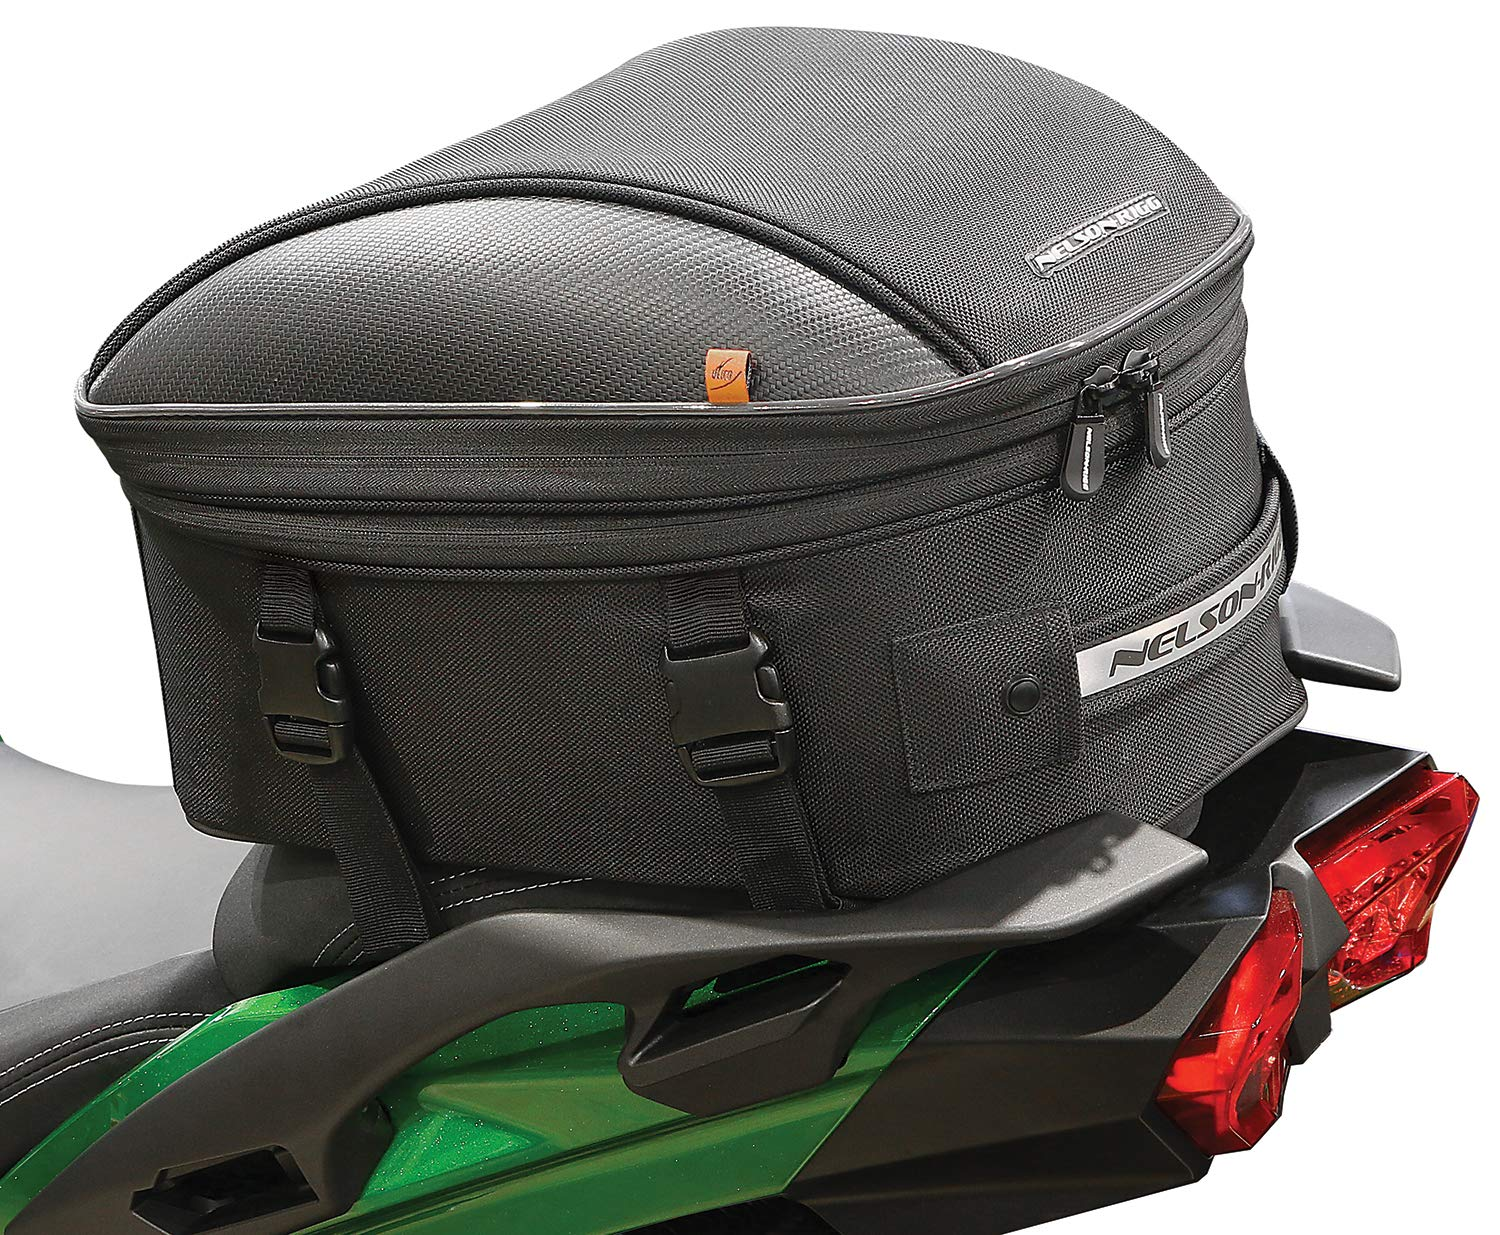 Nelson Rigg CL-1060-ST2 Black Commuter Tour Motorcycle Tail/Seat Bag by Nelson-Rigg